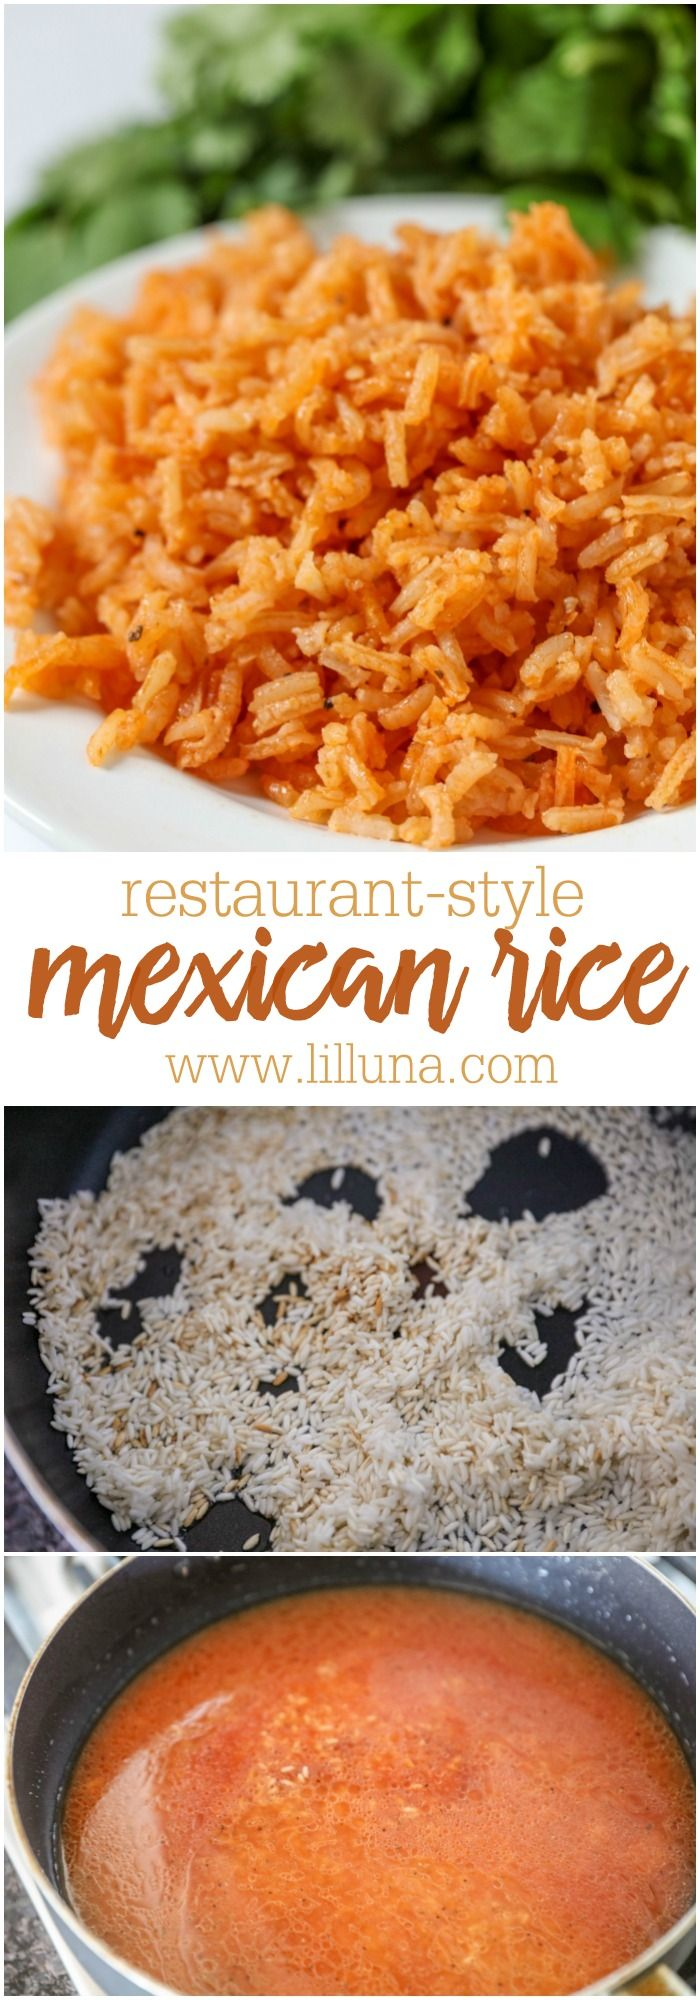 Restaurant-Style Mexican Rice - it is one of the easiest and most delicious…